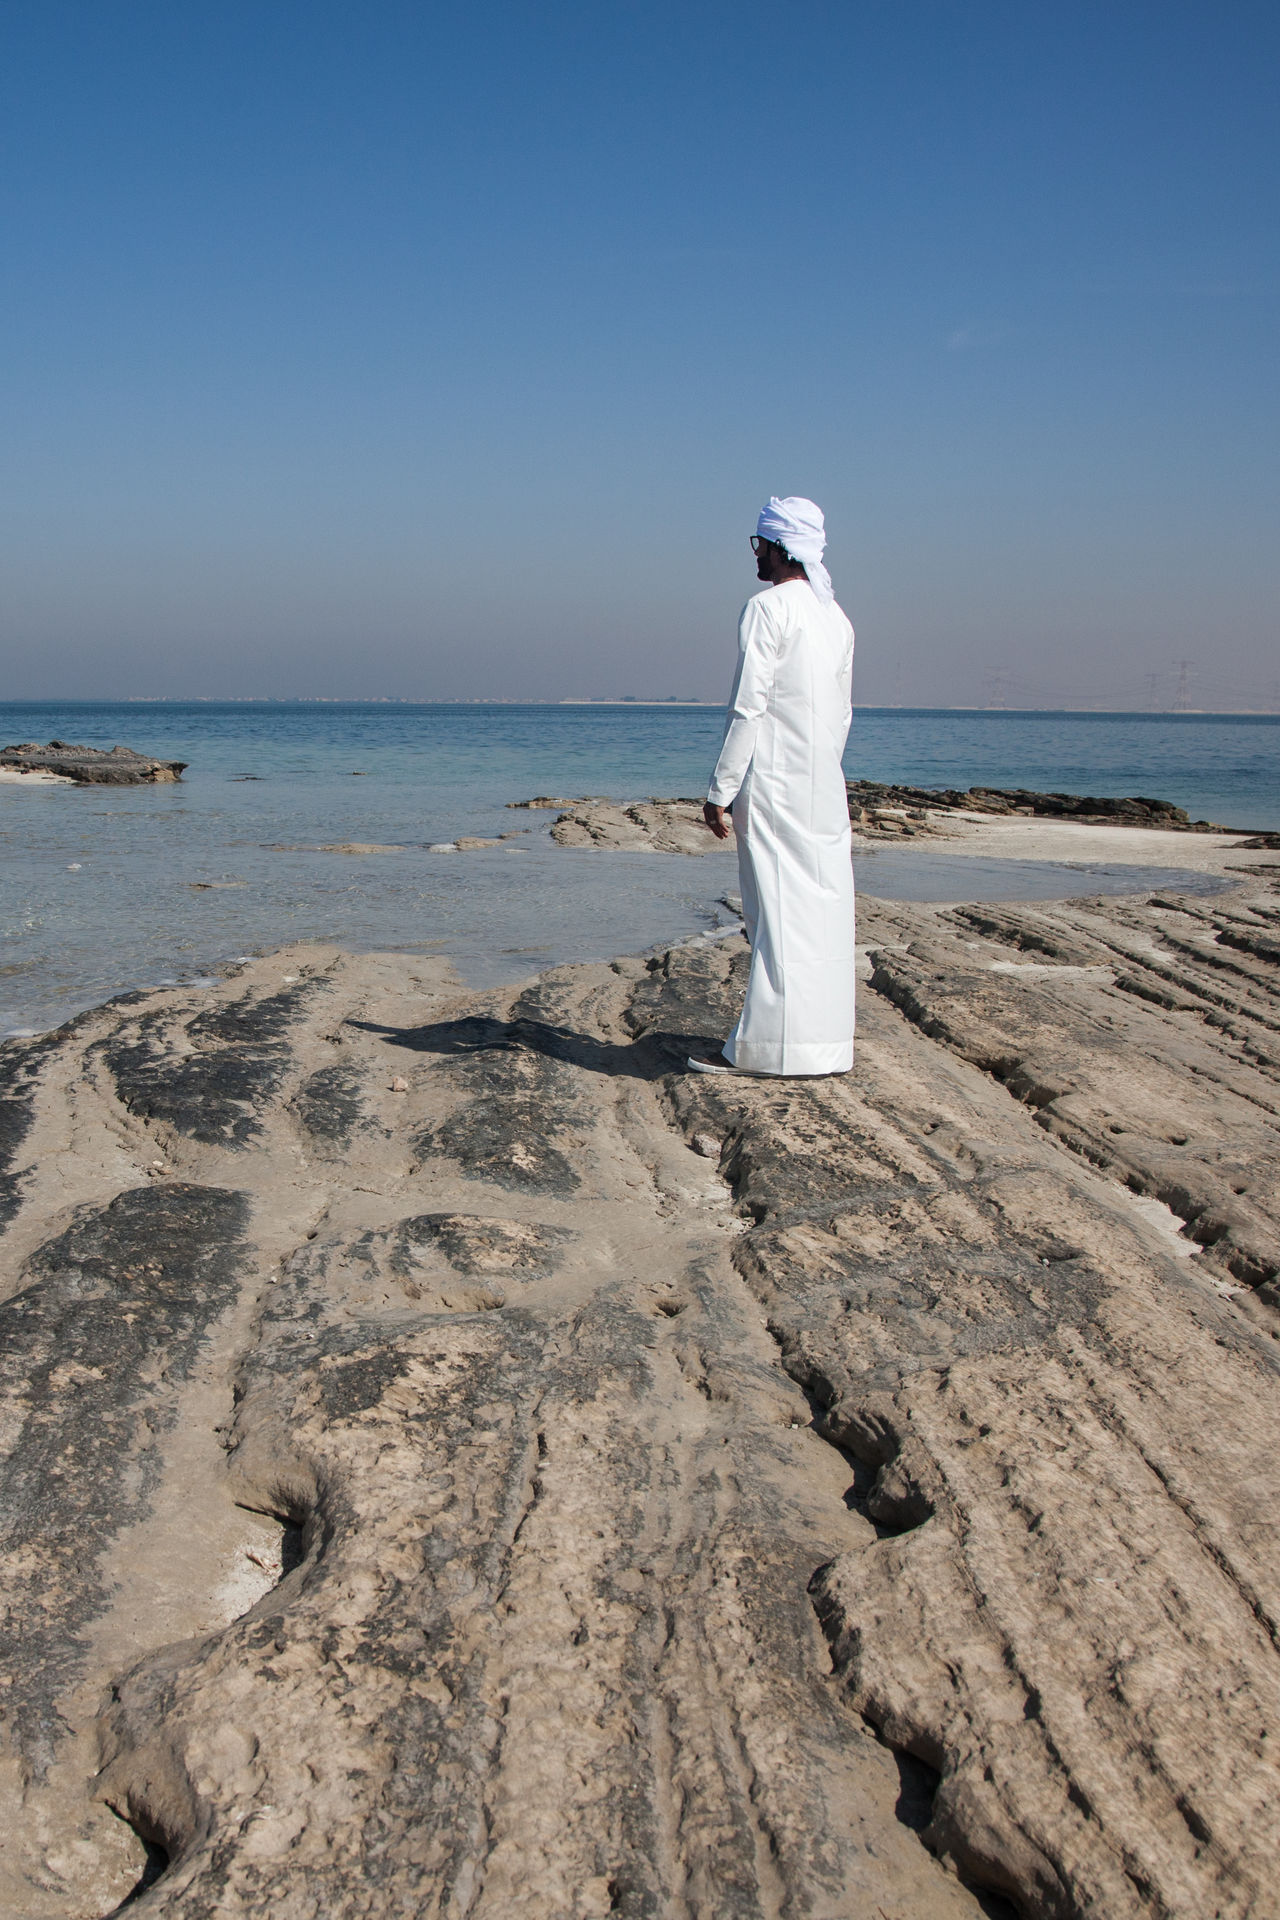 Adult Adults Only Arab Man Beach Clear Sky Day Emirati Emirati Man Full Length Horizon Over Water Nature One Person Only Women Outdoors People Sea Sky Uae,abudhabi Water